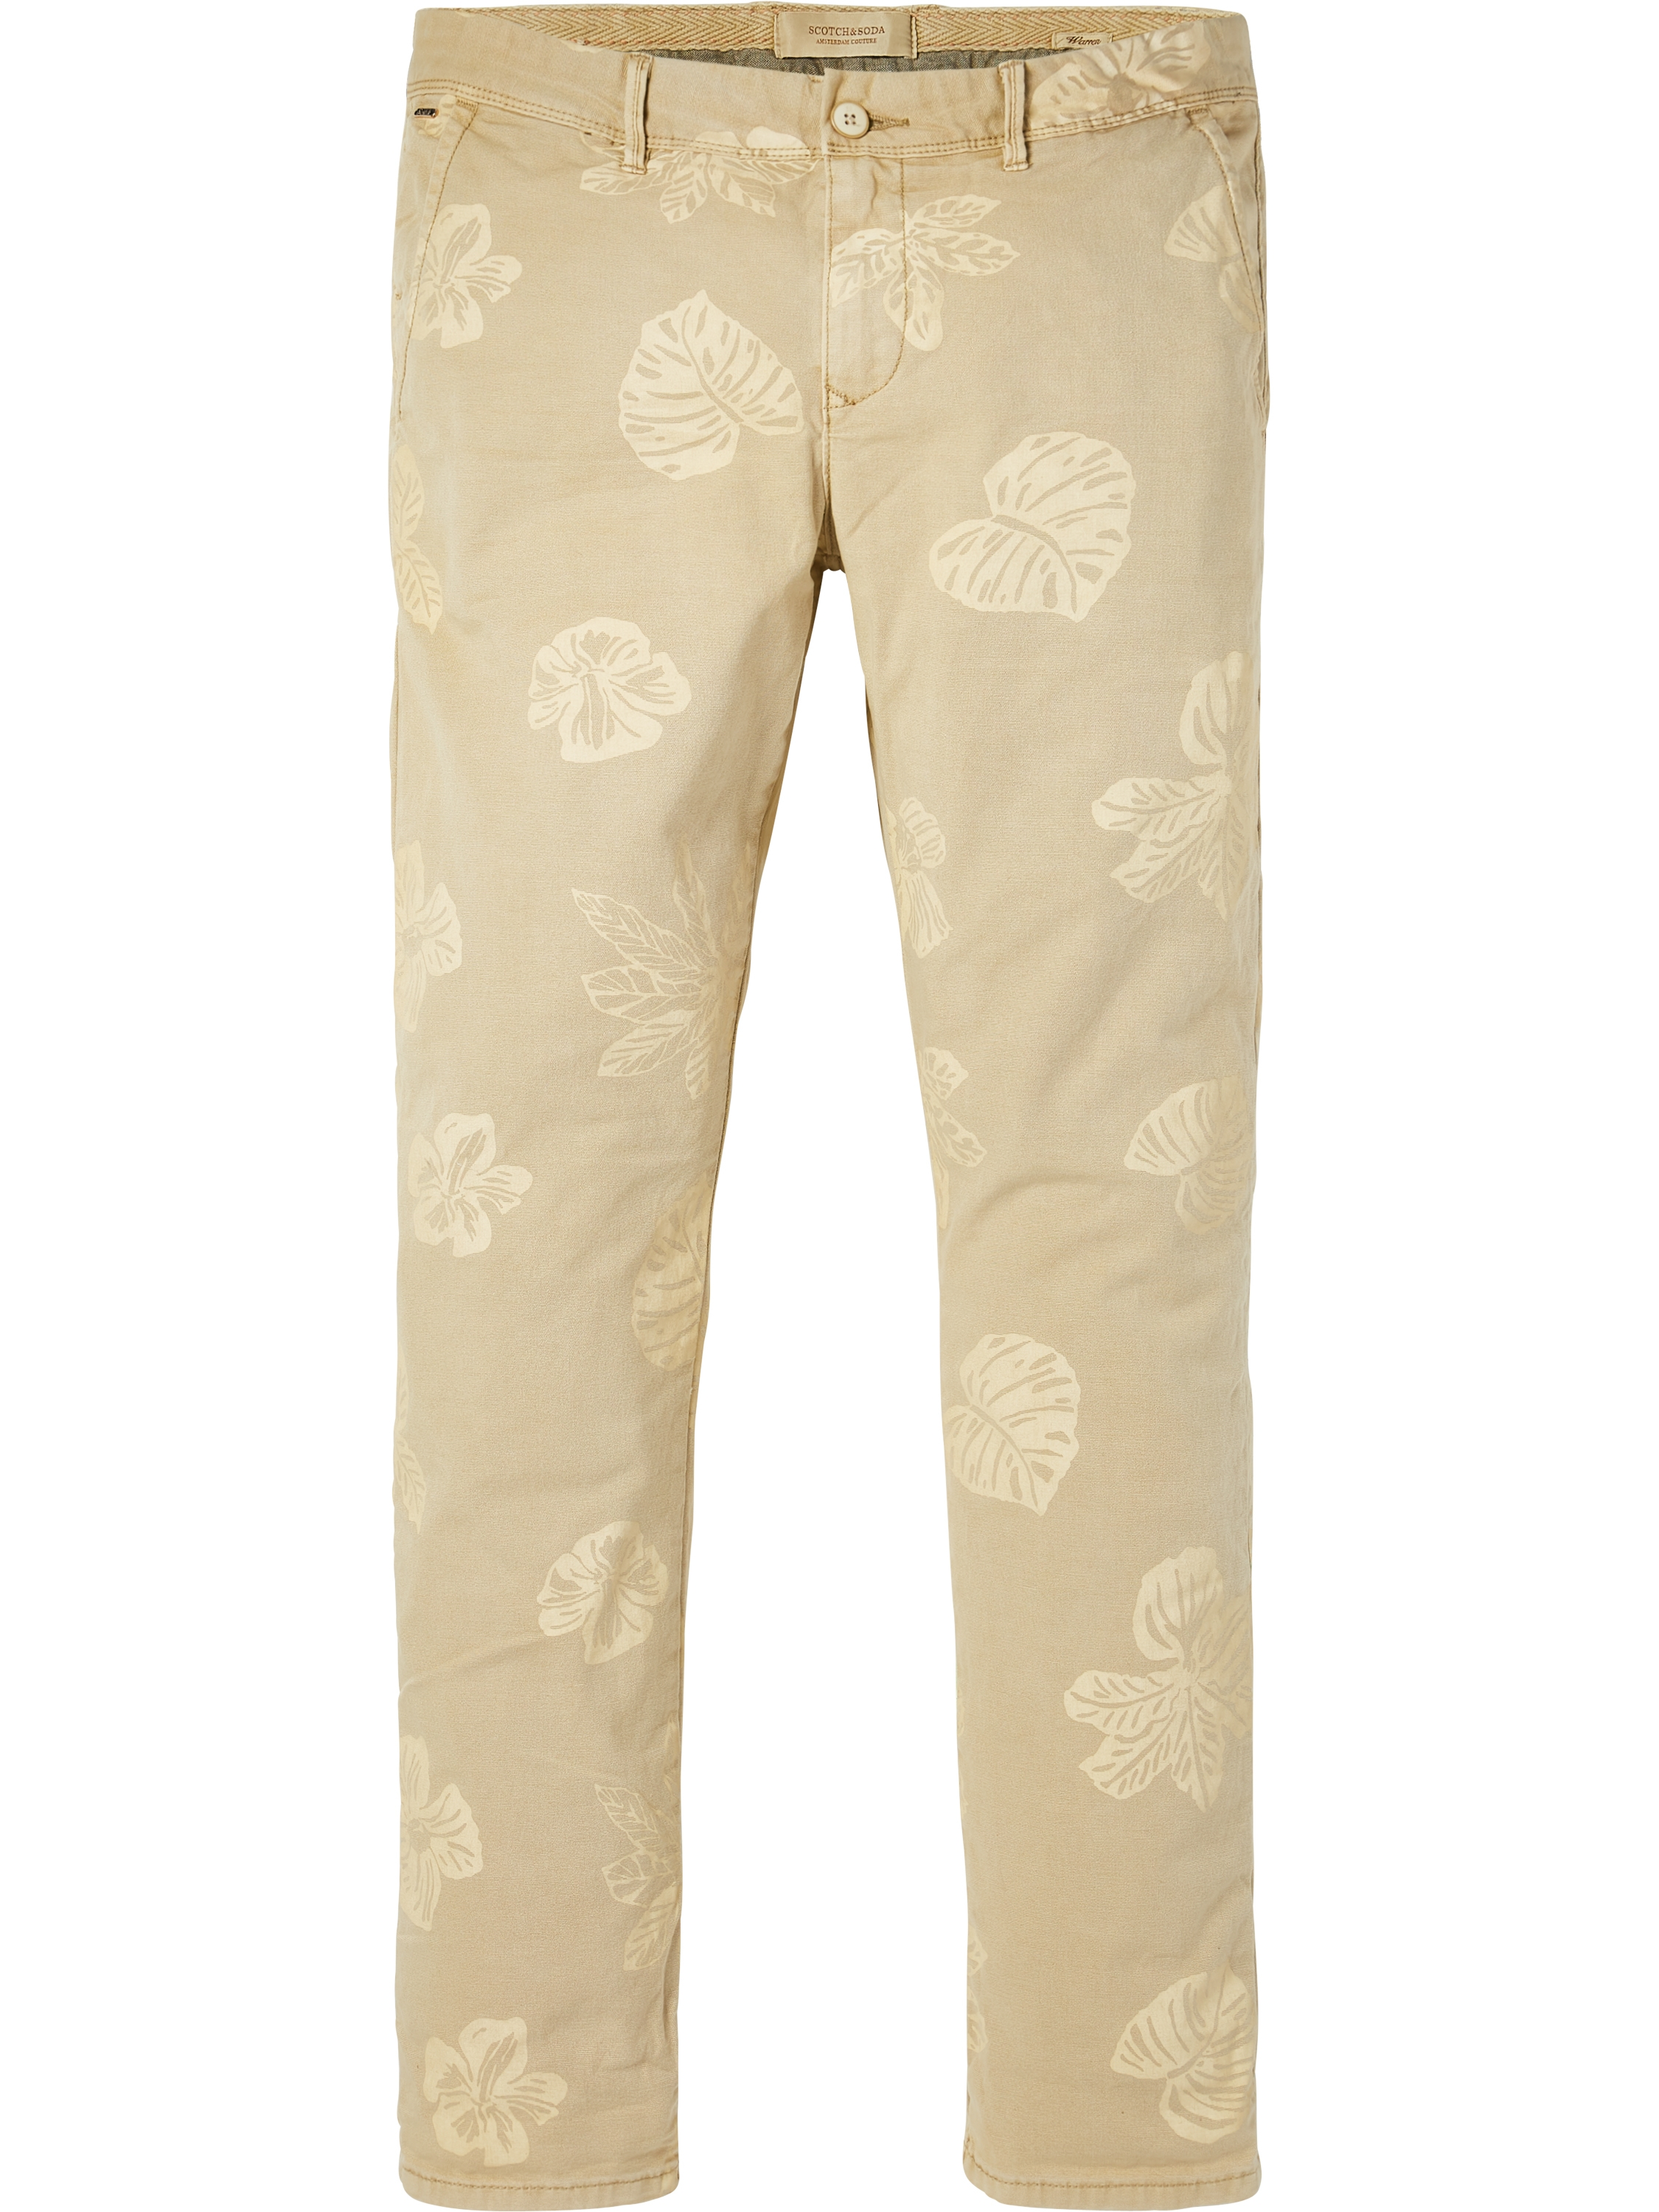 Scotch & Soda, chino trousers, was £144.95 now £80